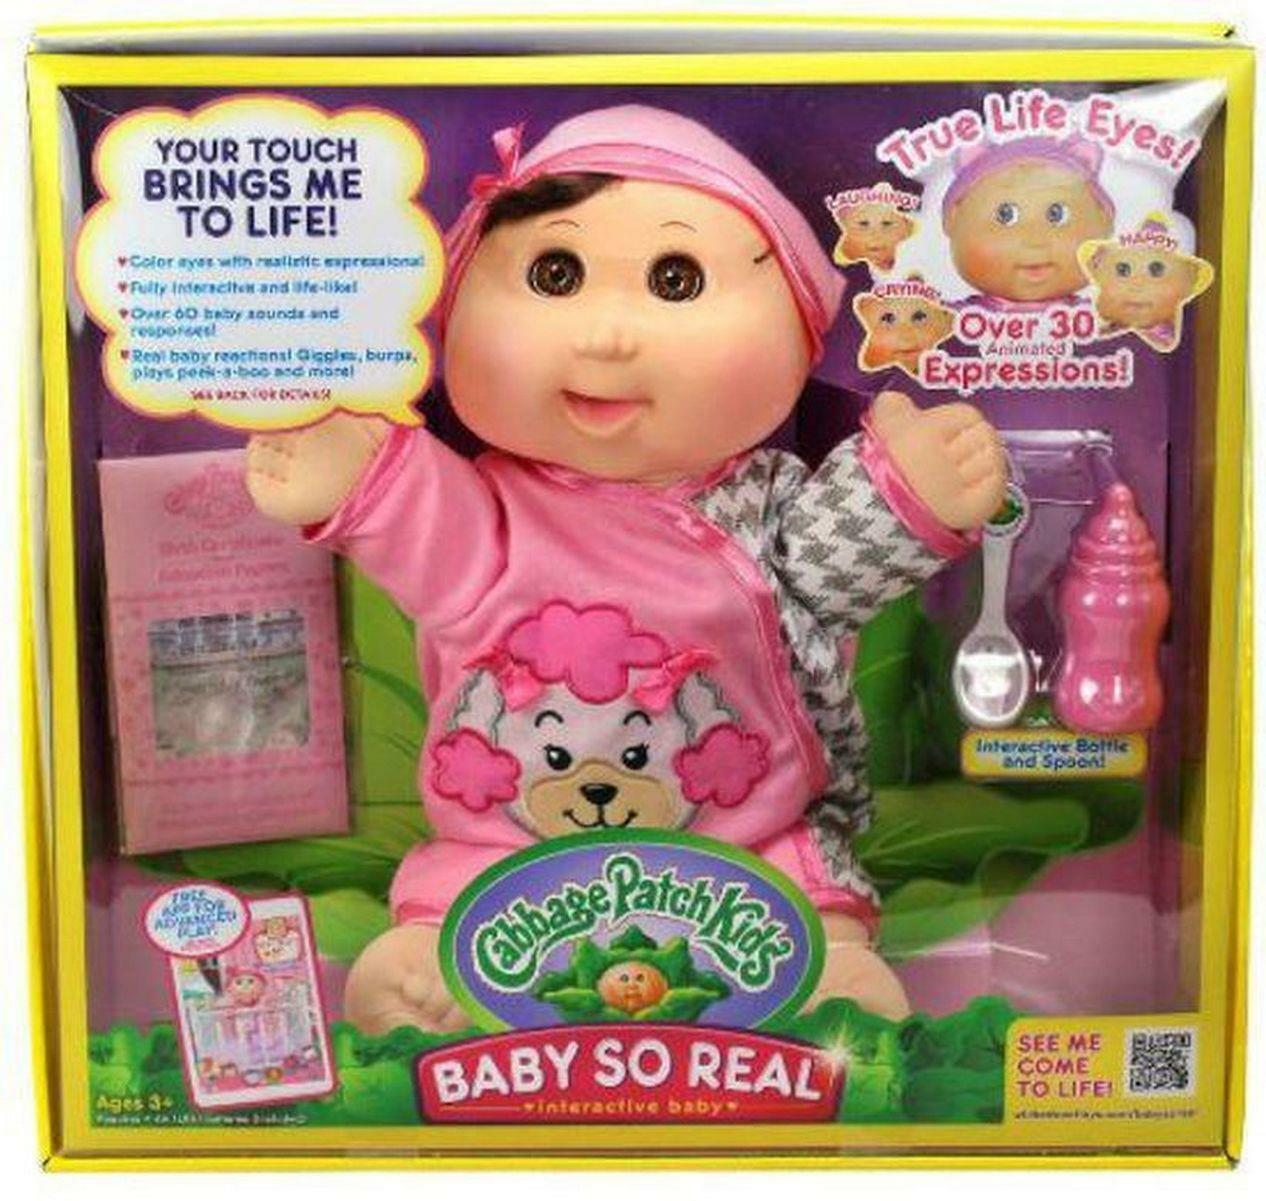 Cabbage Patch Kids Baby so Real Interactive Doll Brunette Charity Jo Dec 19  for sale online | eBay